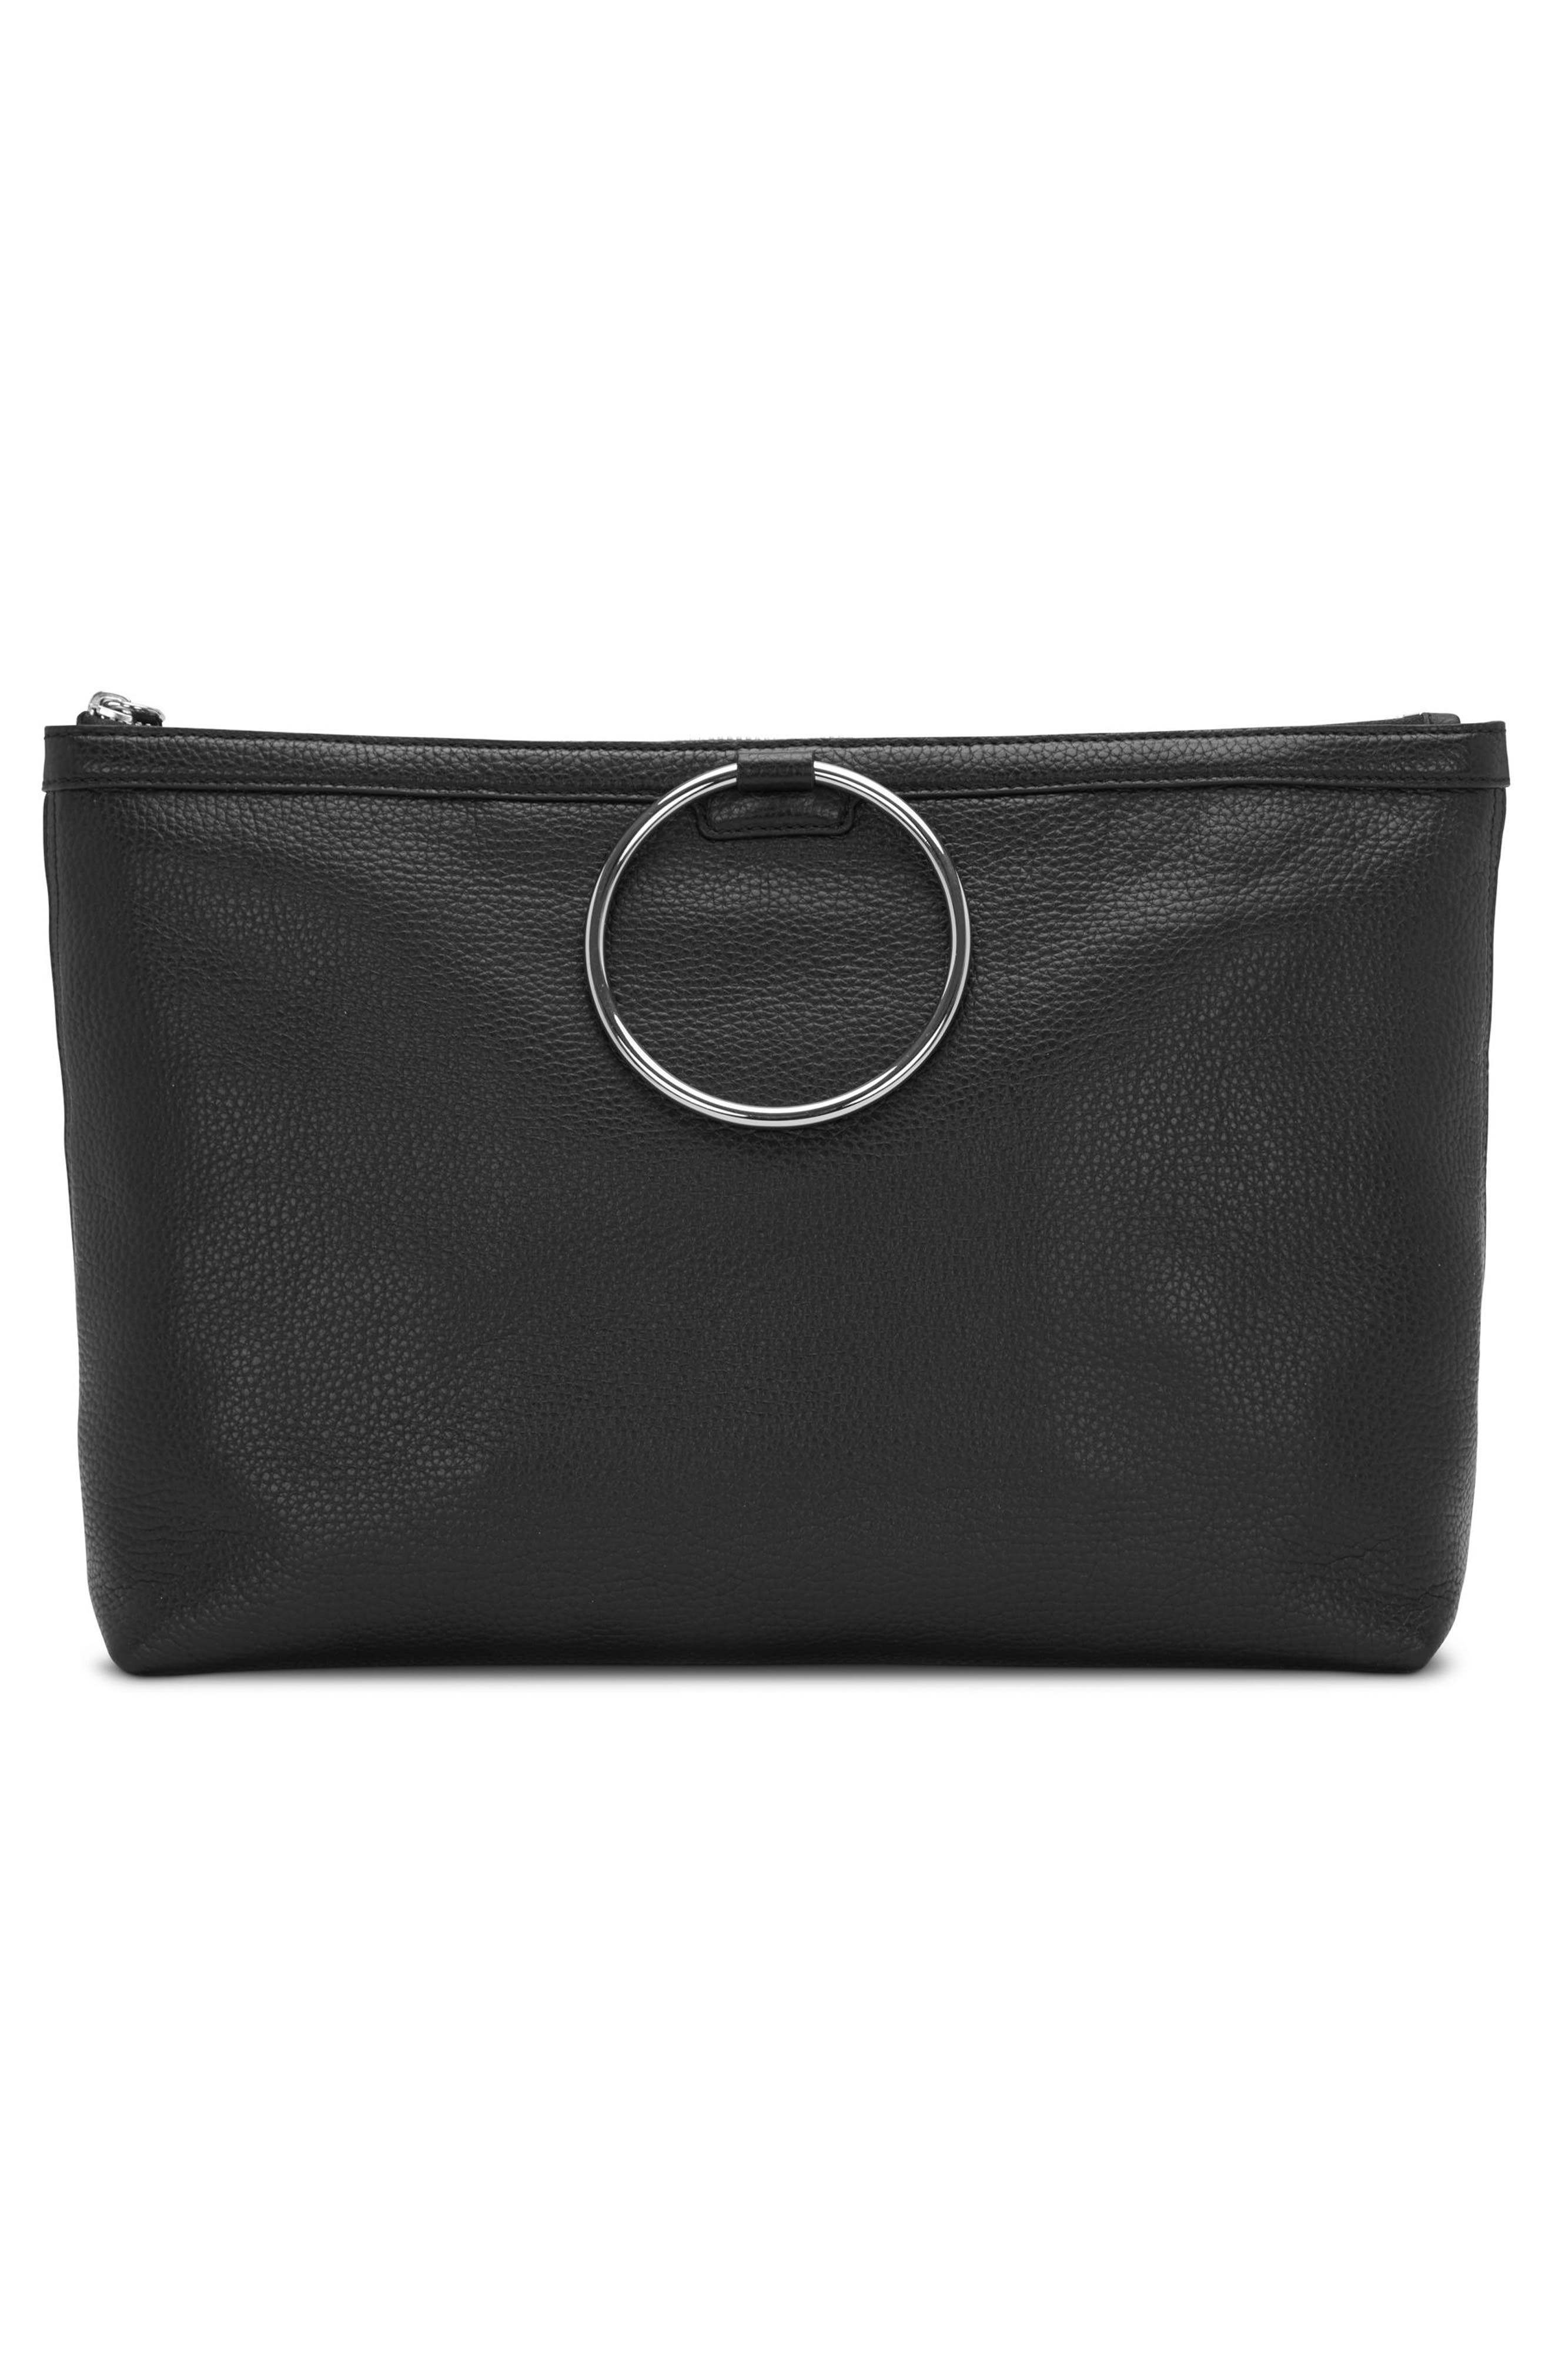 KARA, Large Pebbled Leather Ring Clutch, Alternate thumbnail 8, color, 001